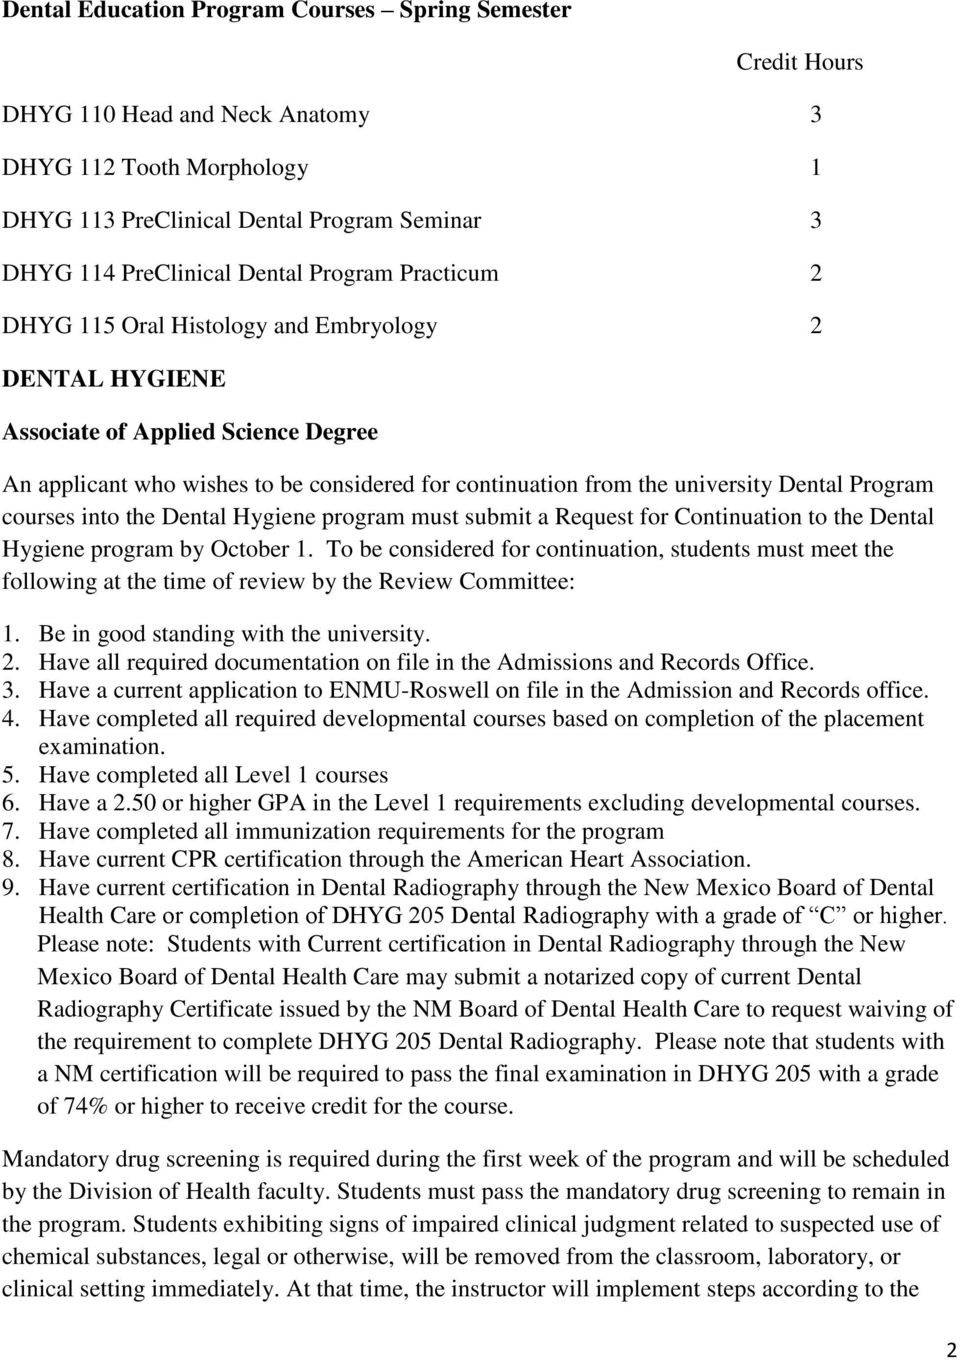 Program courses into the Dental Hygiene program must submit a Request for Continuation to the Dental Hygiene program by October 1.